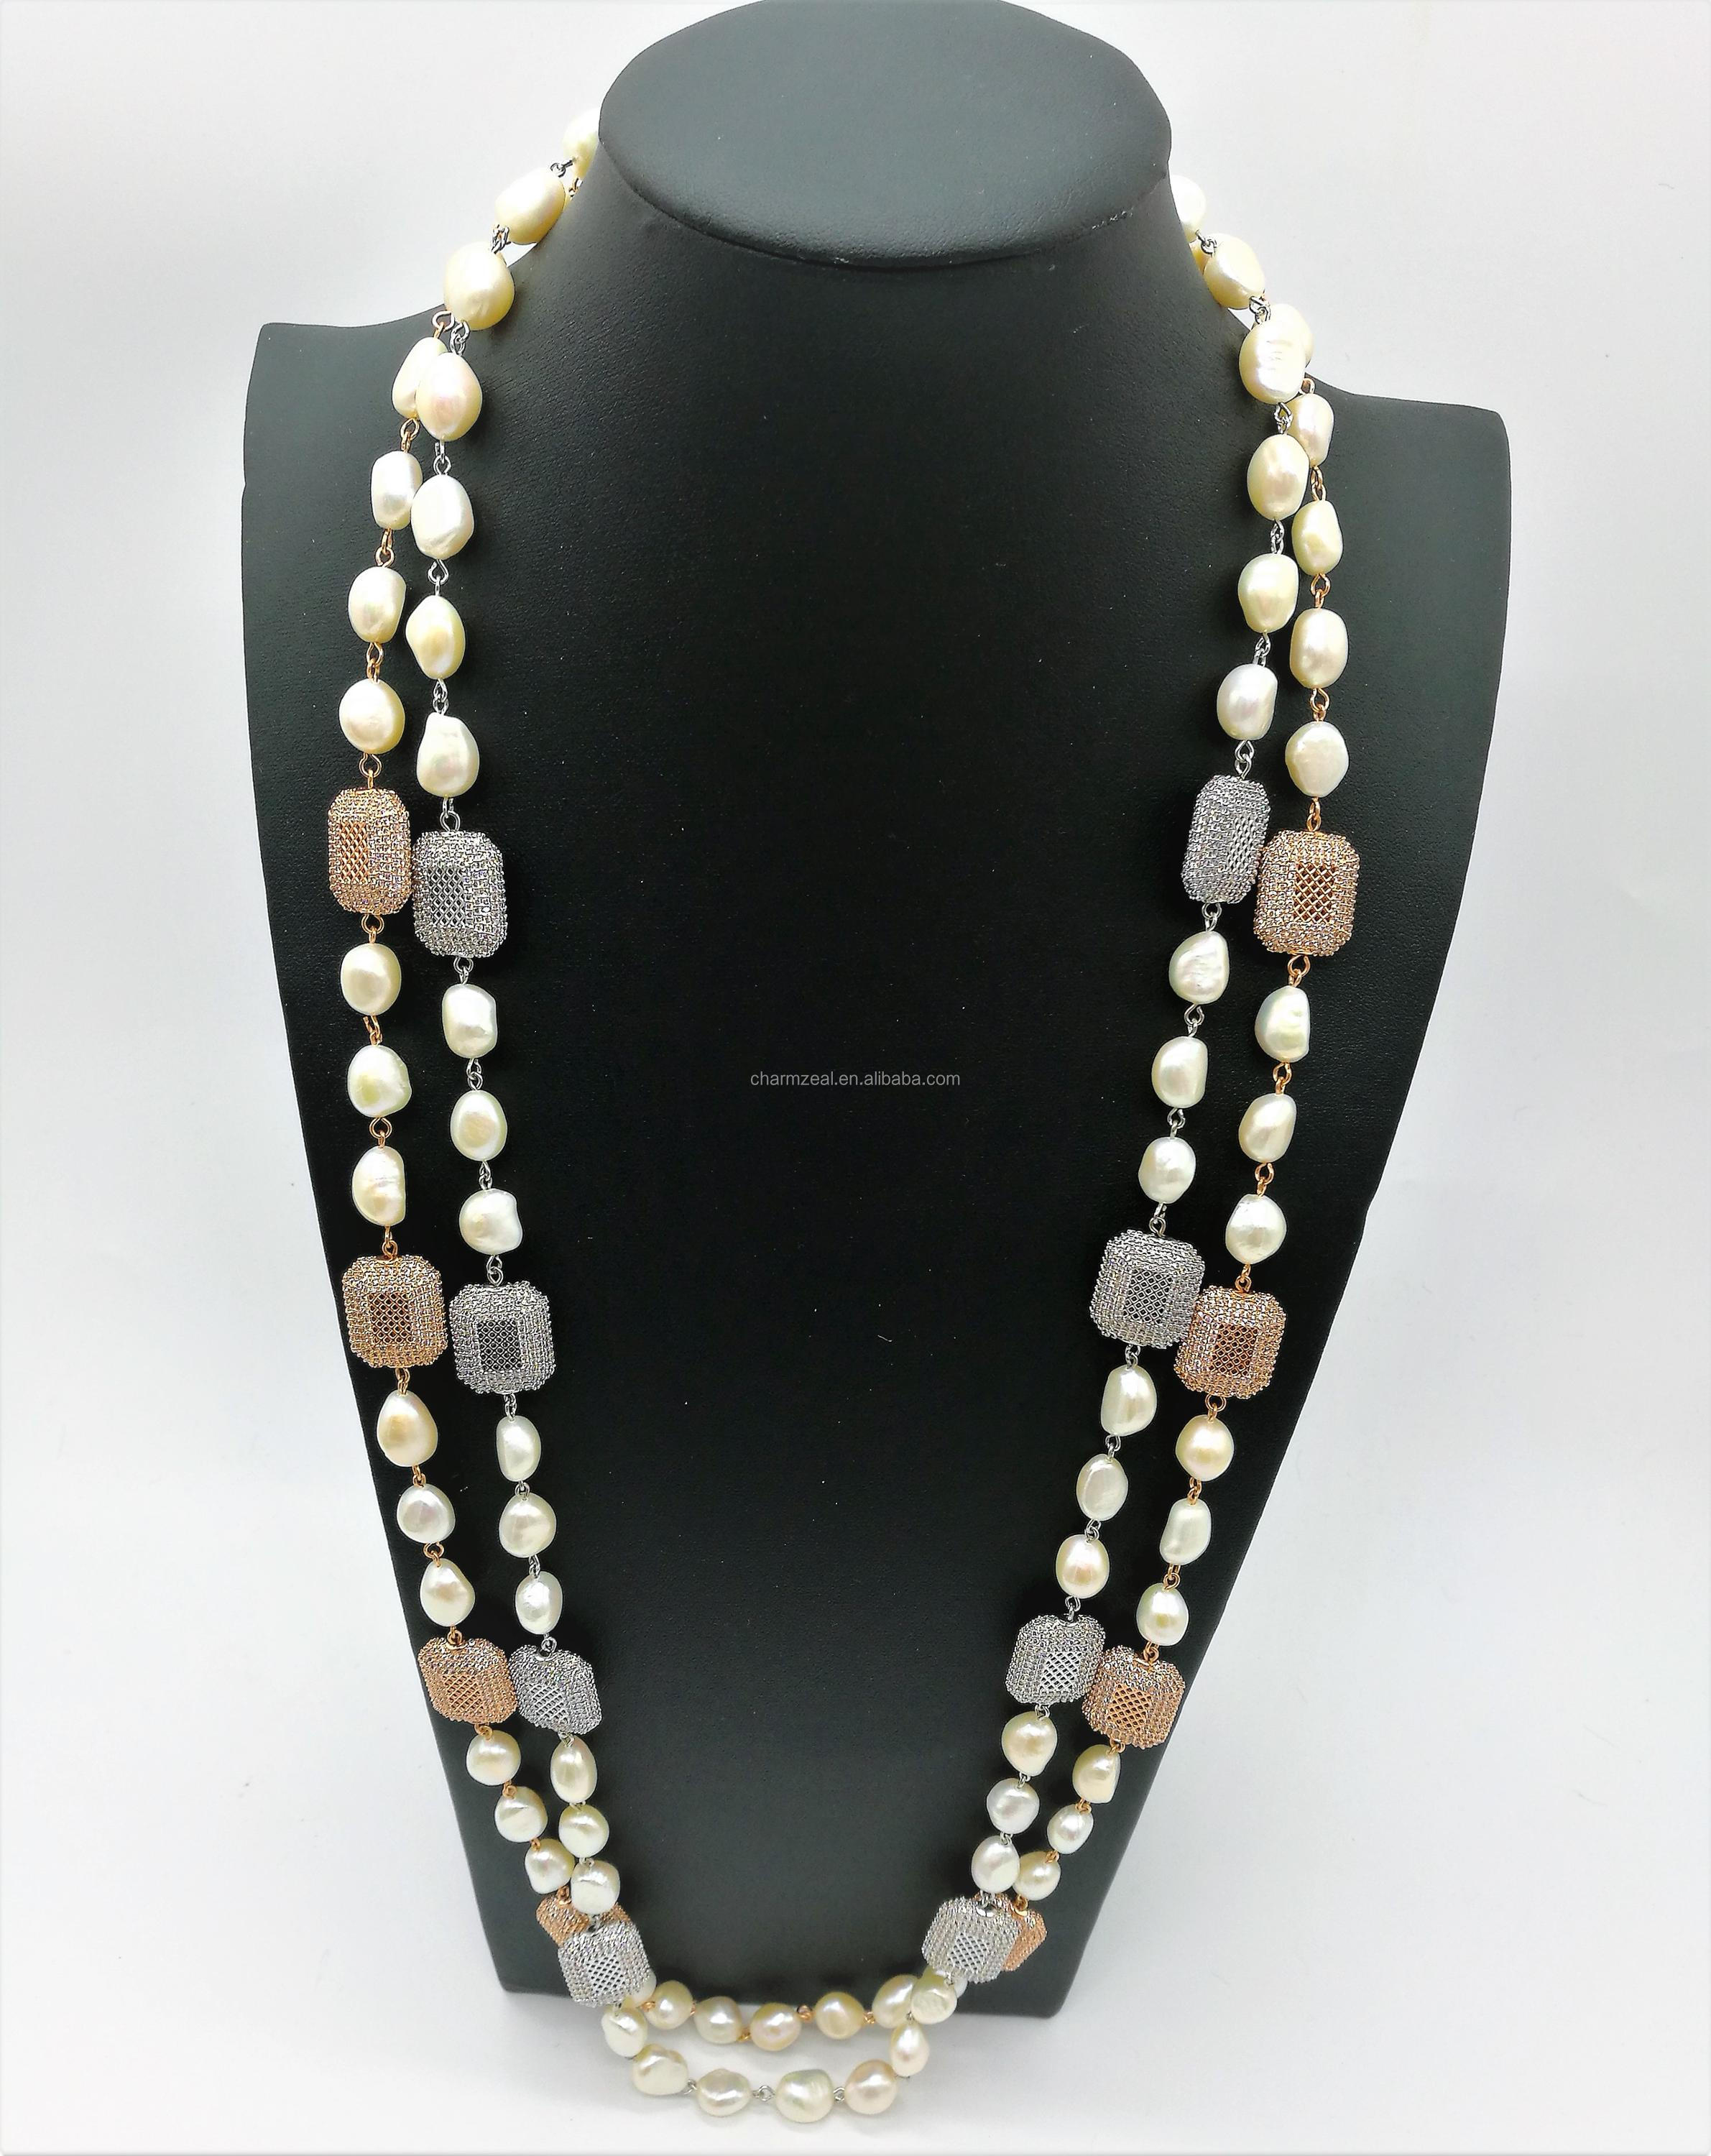 cz suede make detail product pearl jewellery costume different necklaces necklace design jewelry fashion